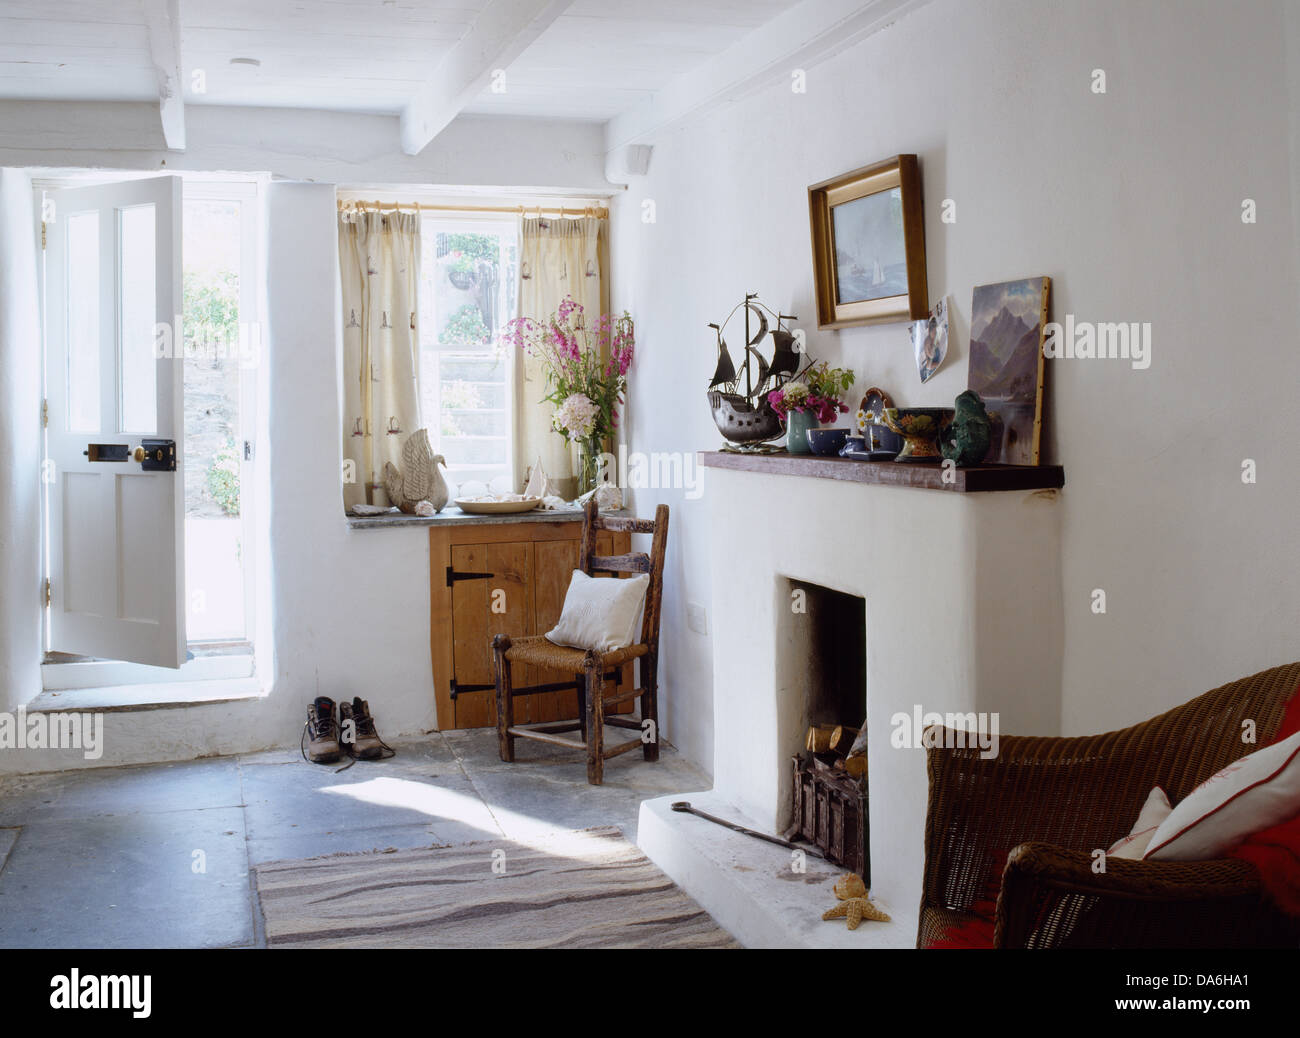 front door opening into cottage sitting room with simple white